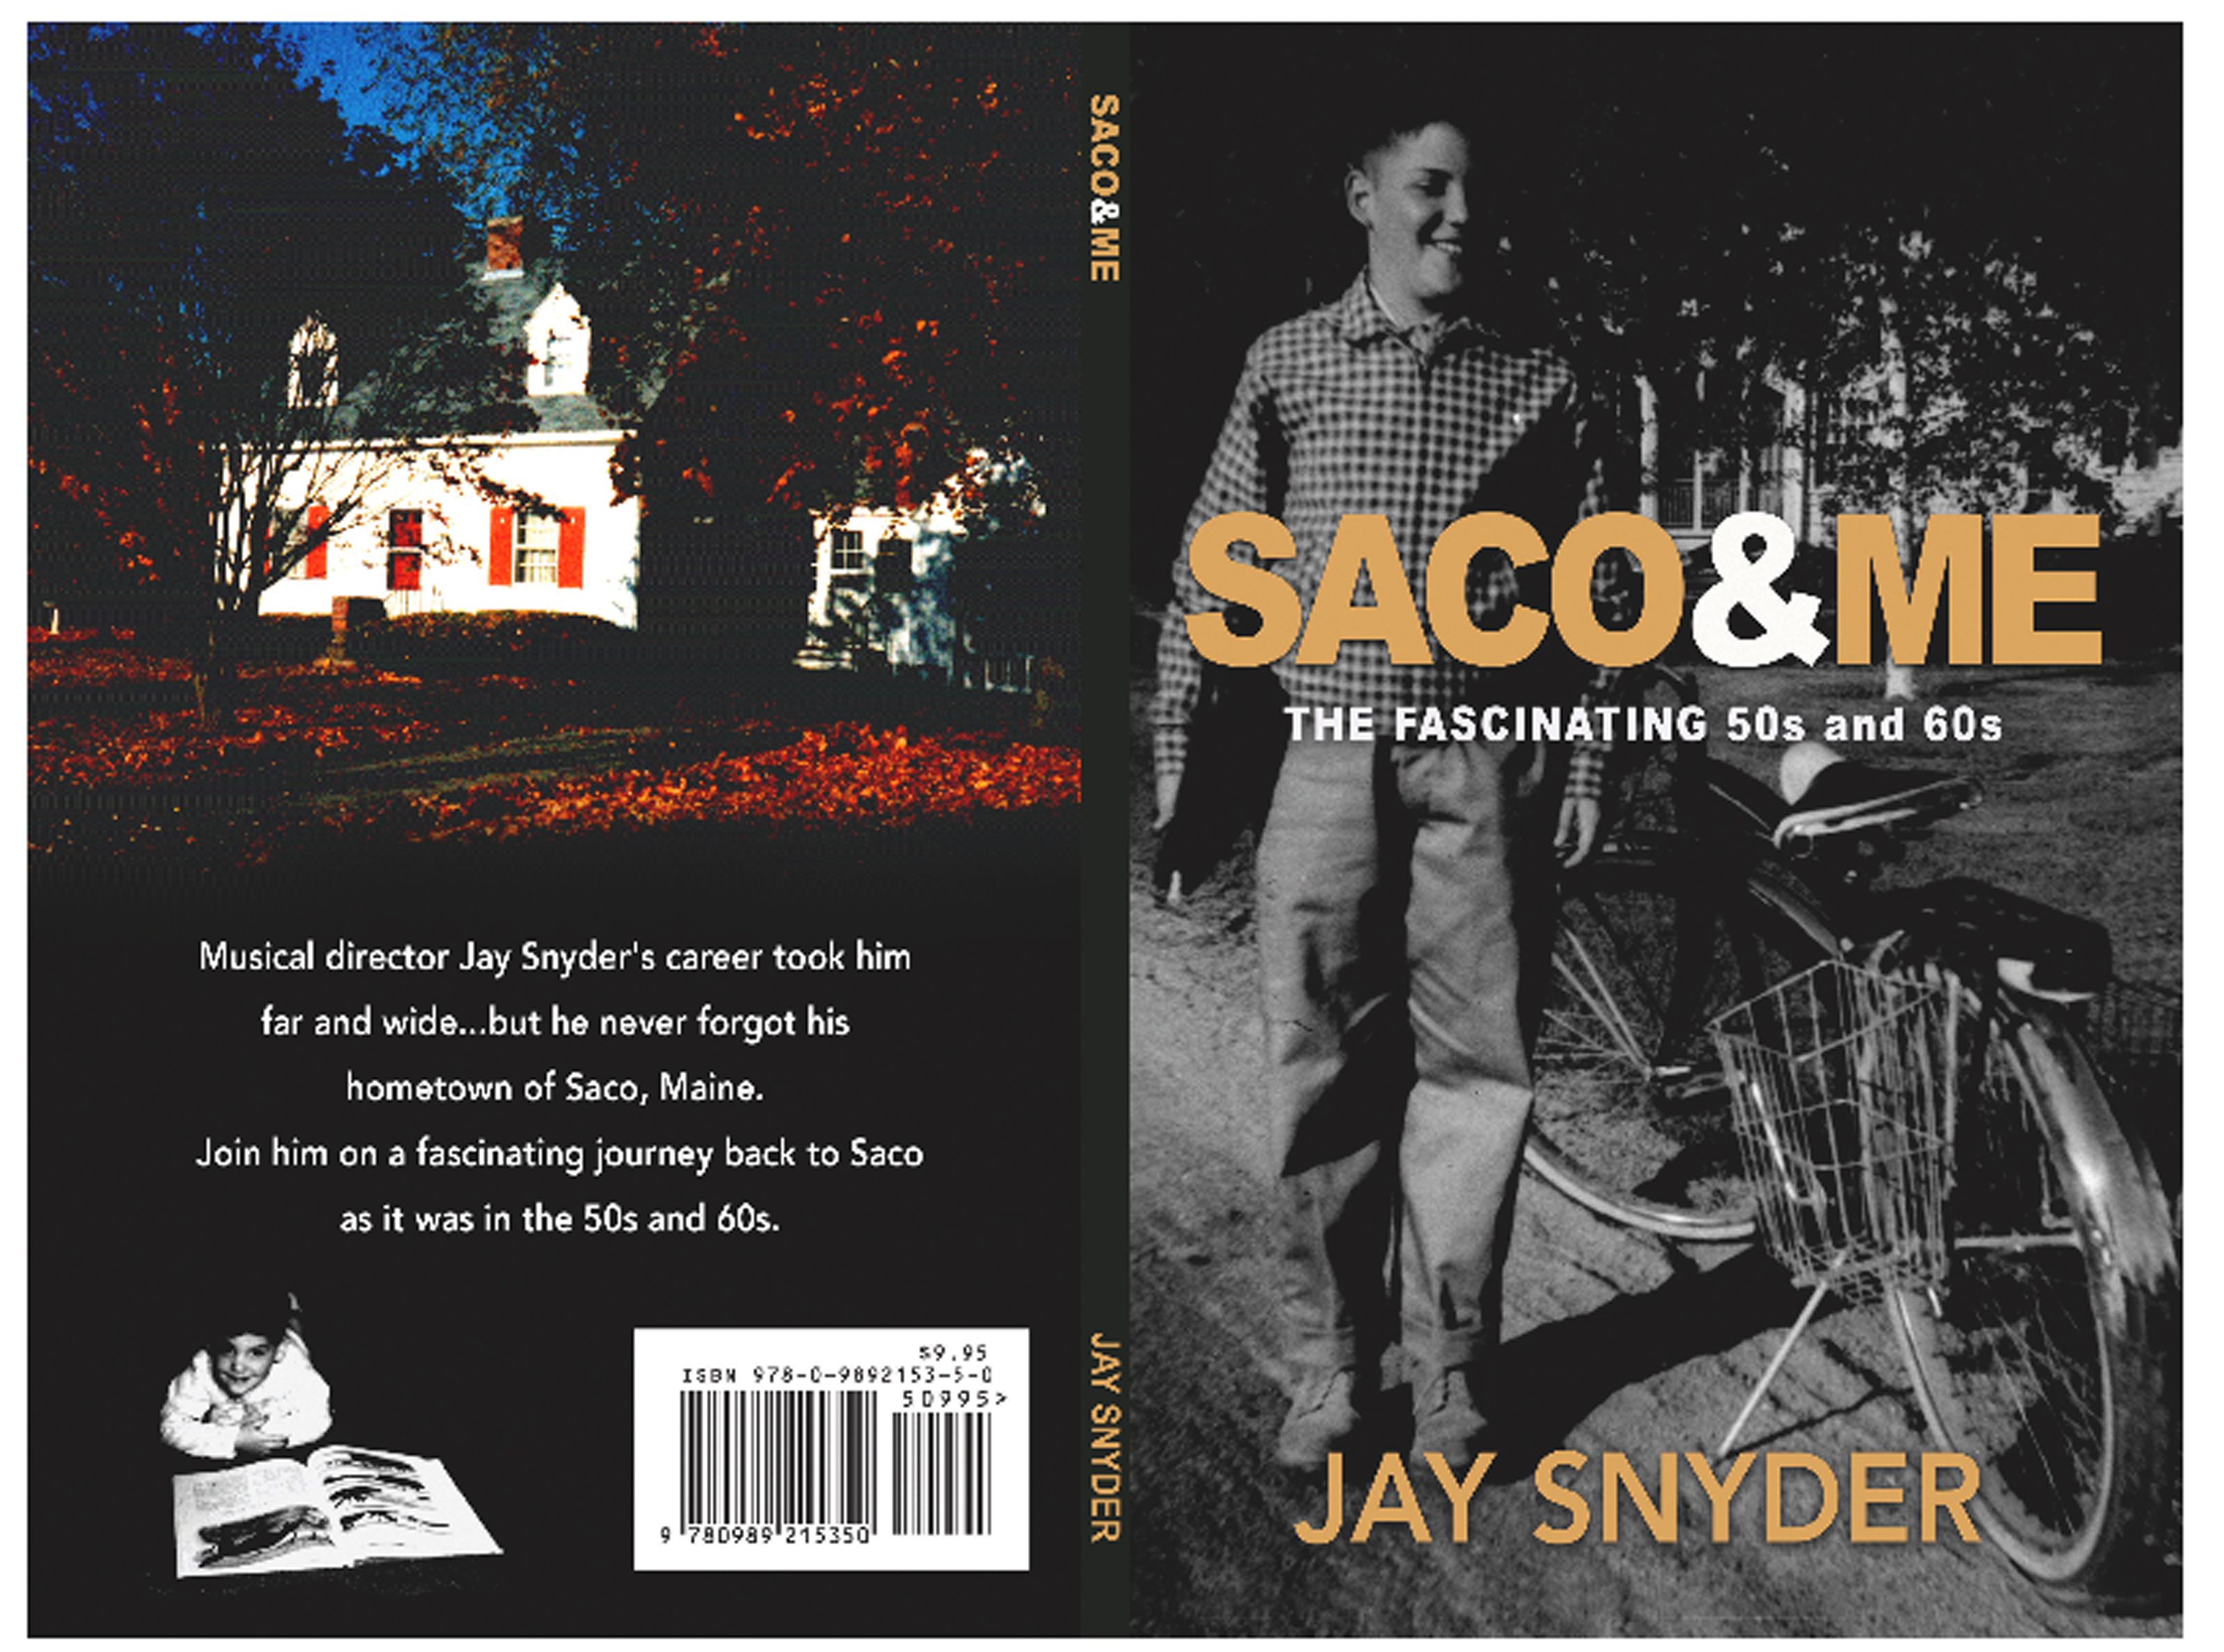 The new book 'SACO & ME' offers a nostalgic glimpse into life growing up the 1950s and 1960s in Saco and is written by a former resident who went on to serve as a music director for performers like Tony Orlando. COURTESY PHOTO/Jay Snyder